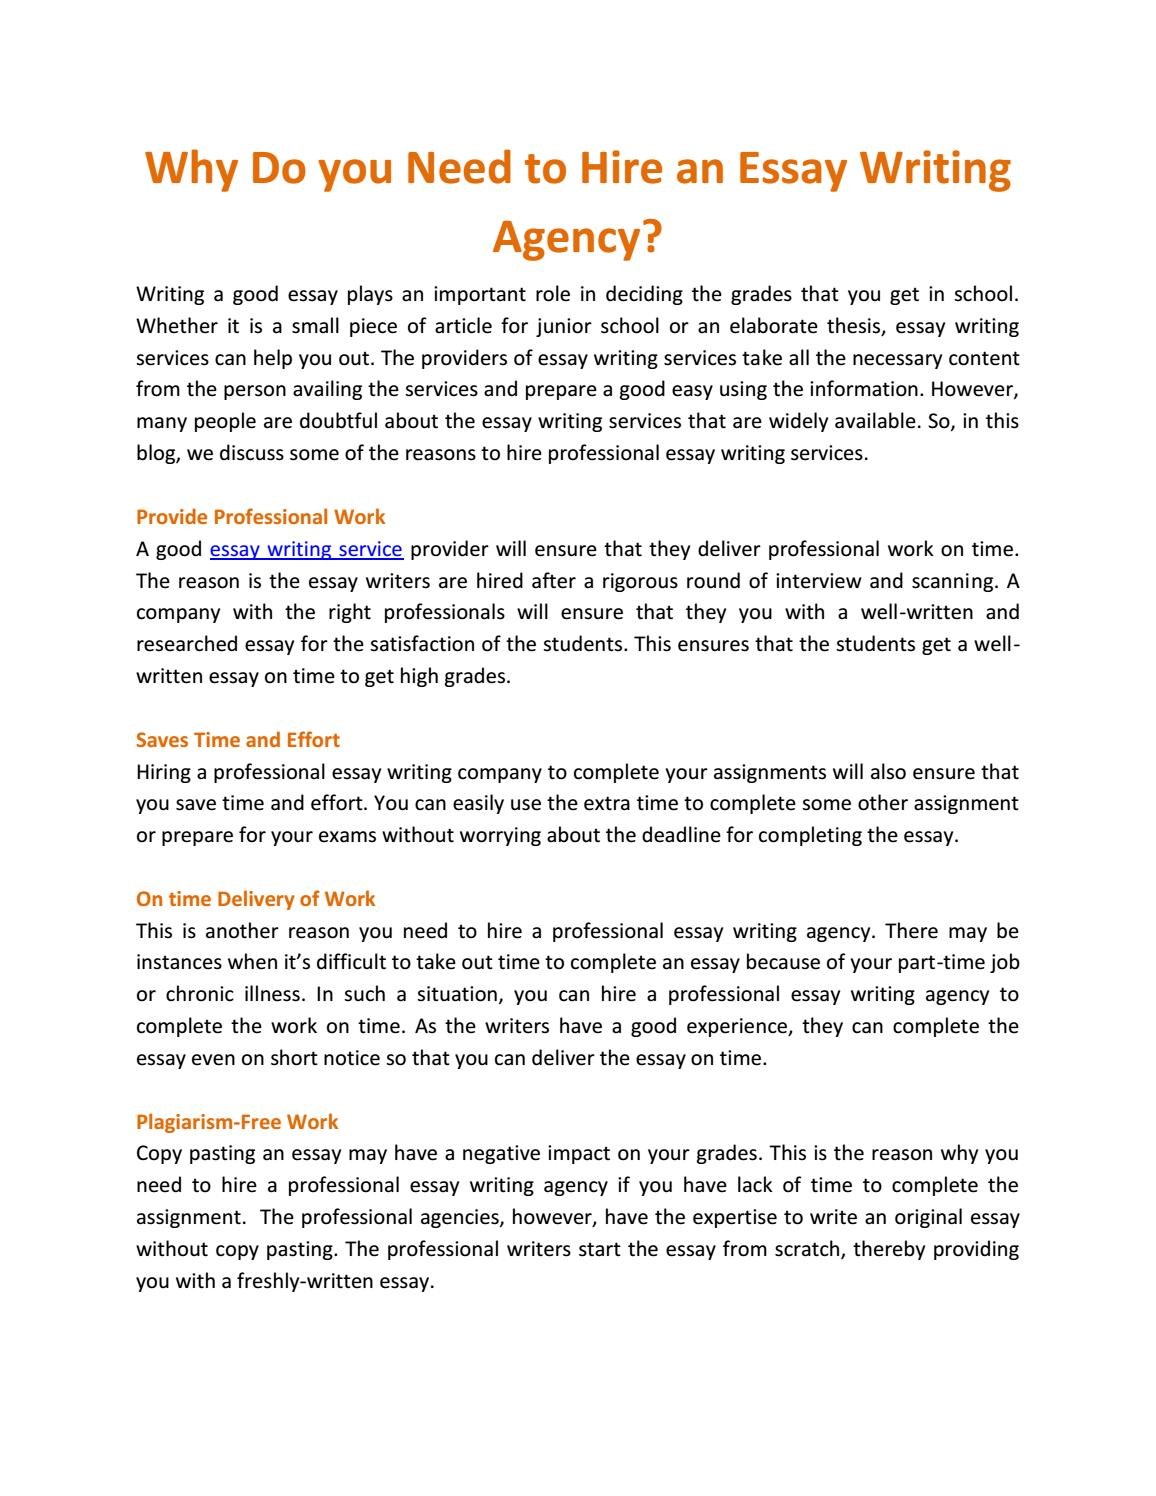 Best Writing Service Websites  Essay With Thesis Statement Example also Example Of An English Essay Why Do You Need To Hire An Essay Writing Agency By Kinsley Verk  Issuu Help Assignment